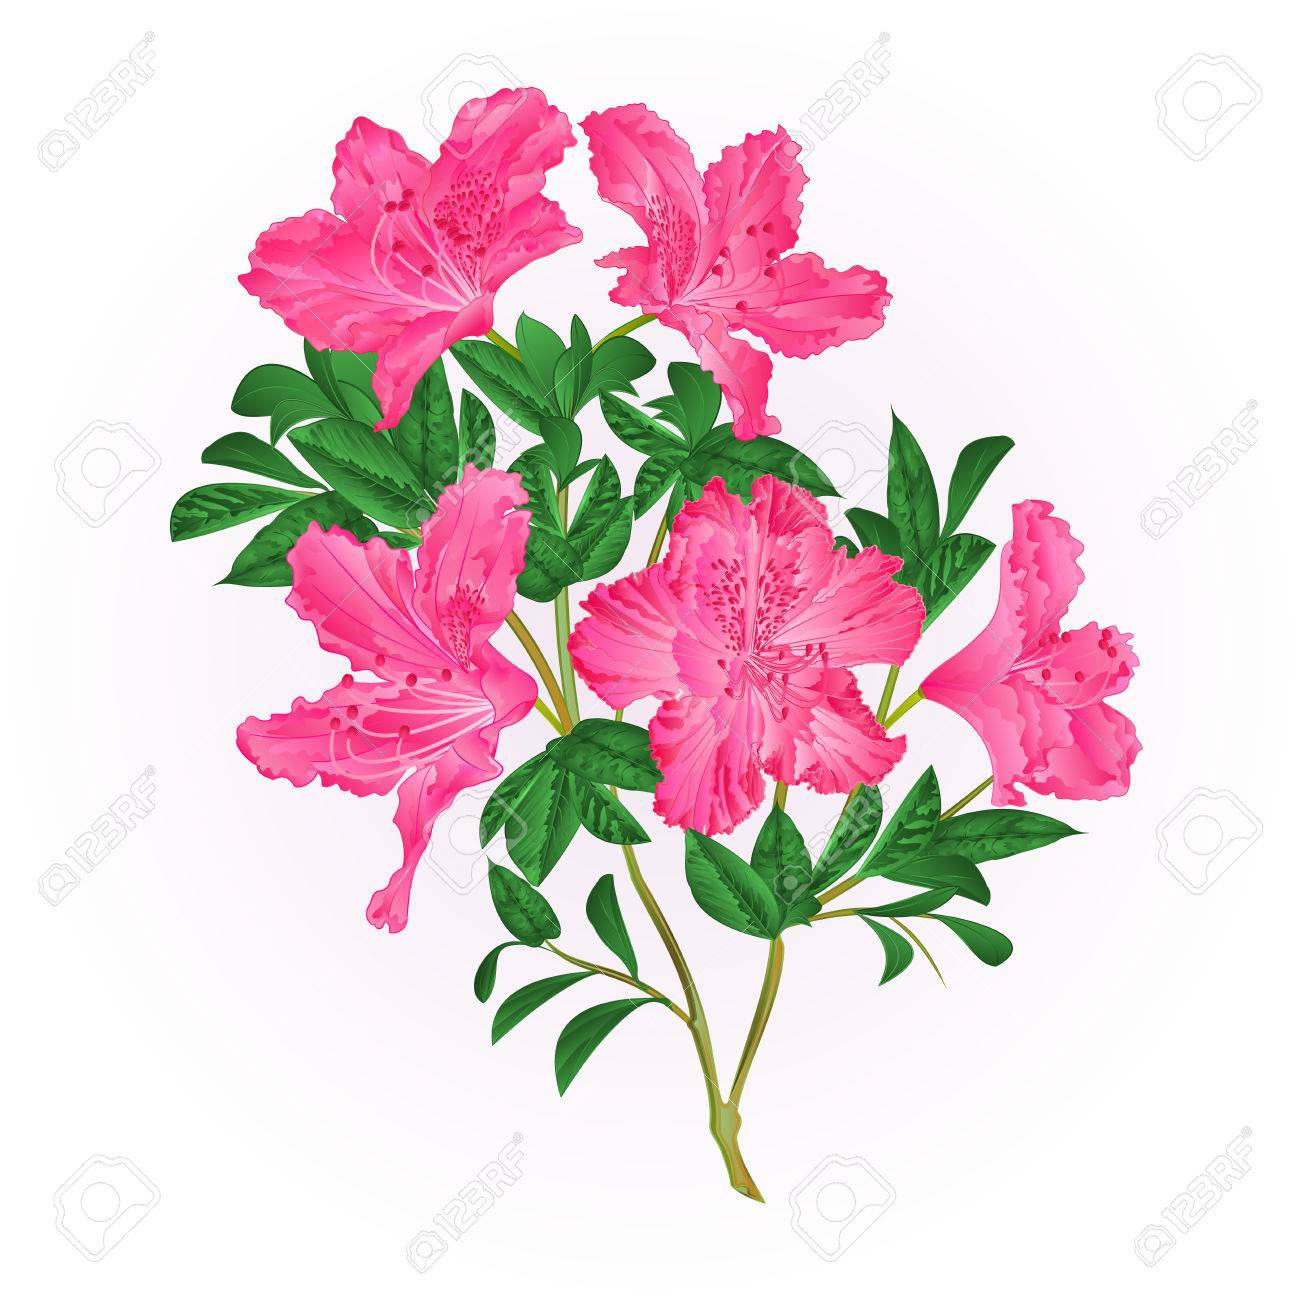 Pink flowers rhododendron twig with leaves mountain shrub vintage pink flowers rhododendron twig with leaves mountain shrub vintage hand draw vector illustration stock vector mightylinksfo